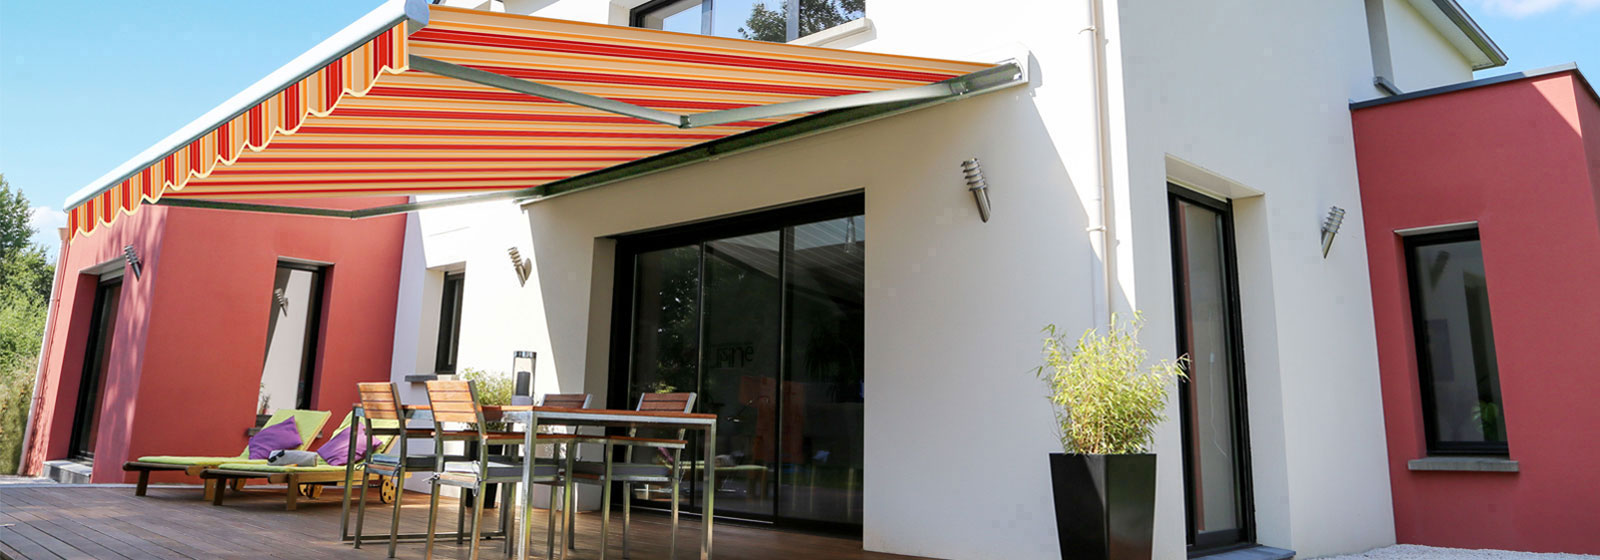 Awnings & Shades